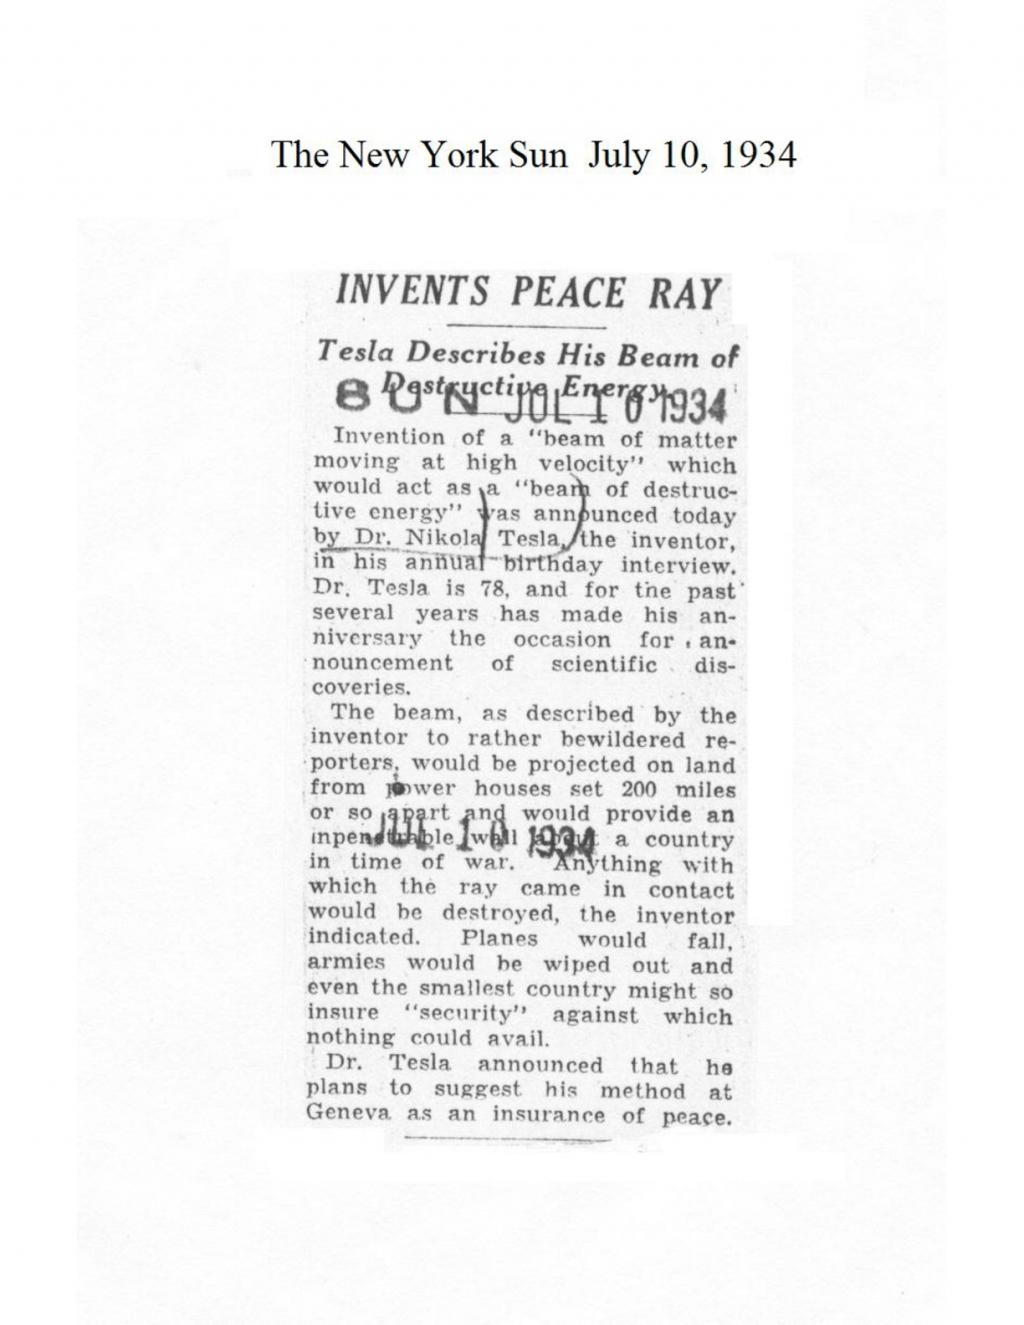 Preview of Invents Peace Ray article